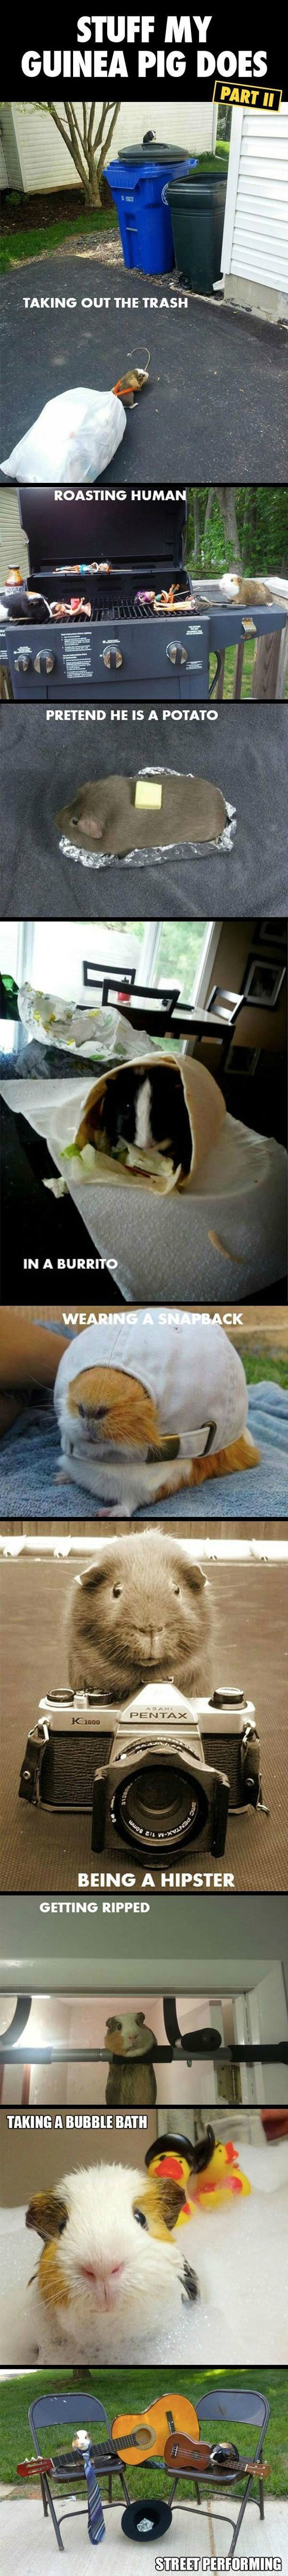 Stuff my guinea pig does. ...for some reason this really makes me laugh. THE POTATO ONE HAHAHA